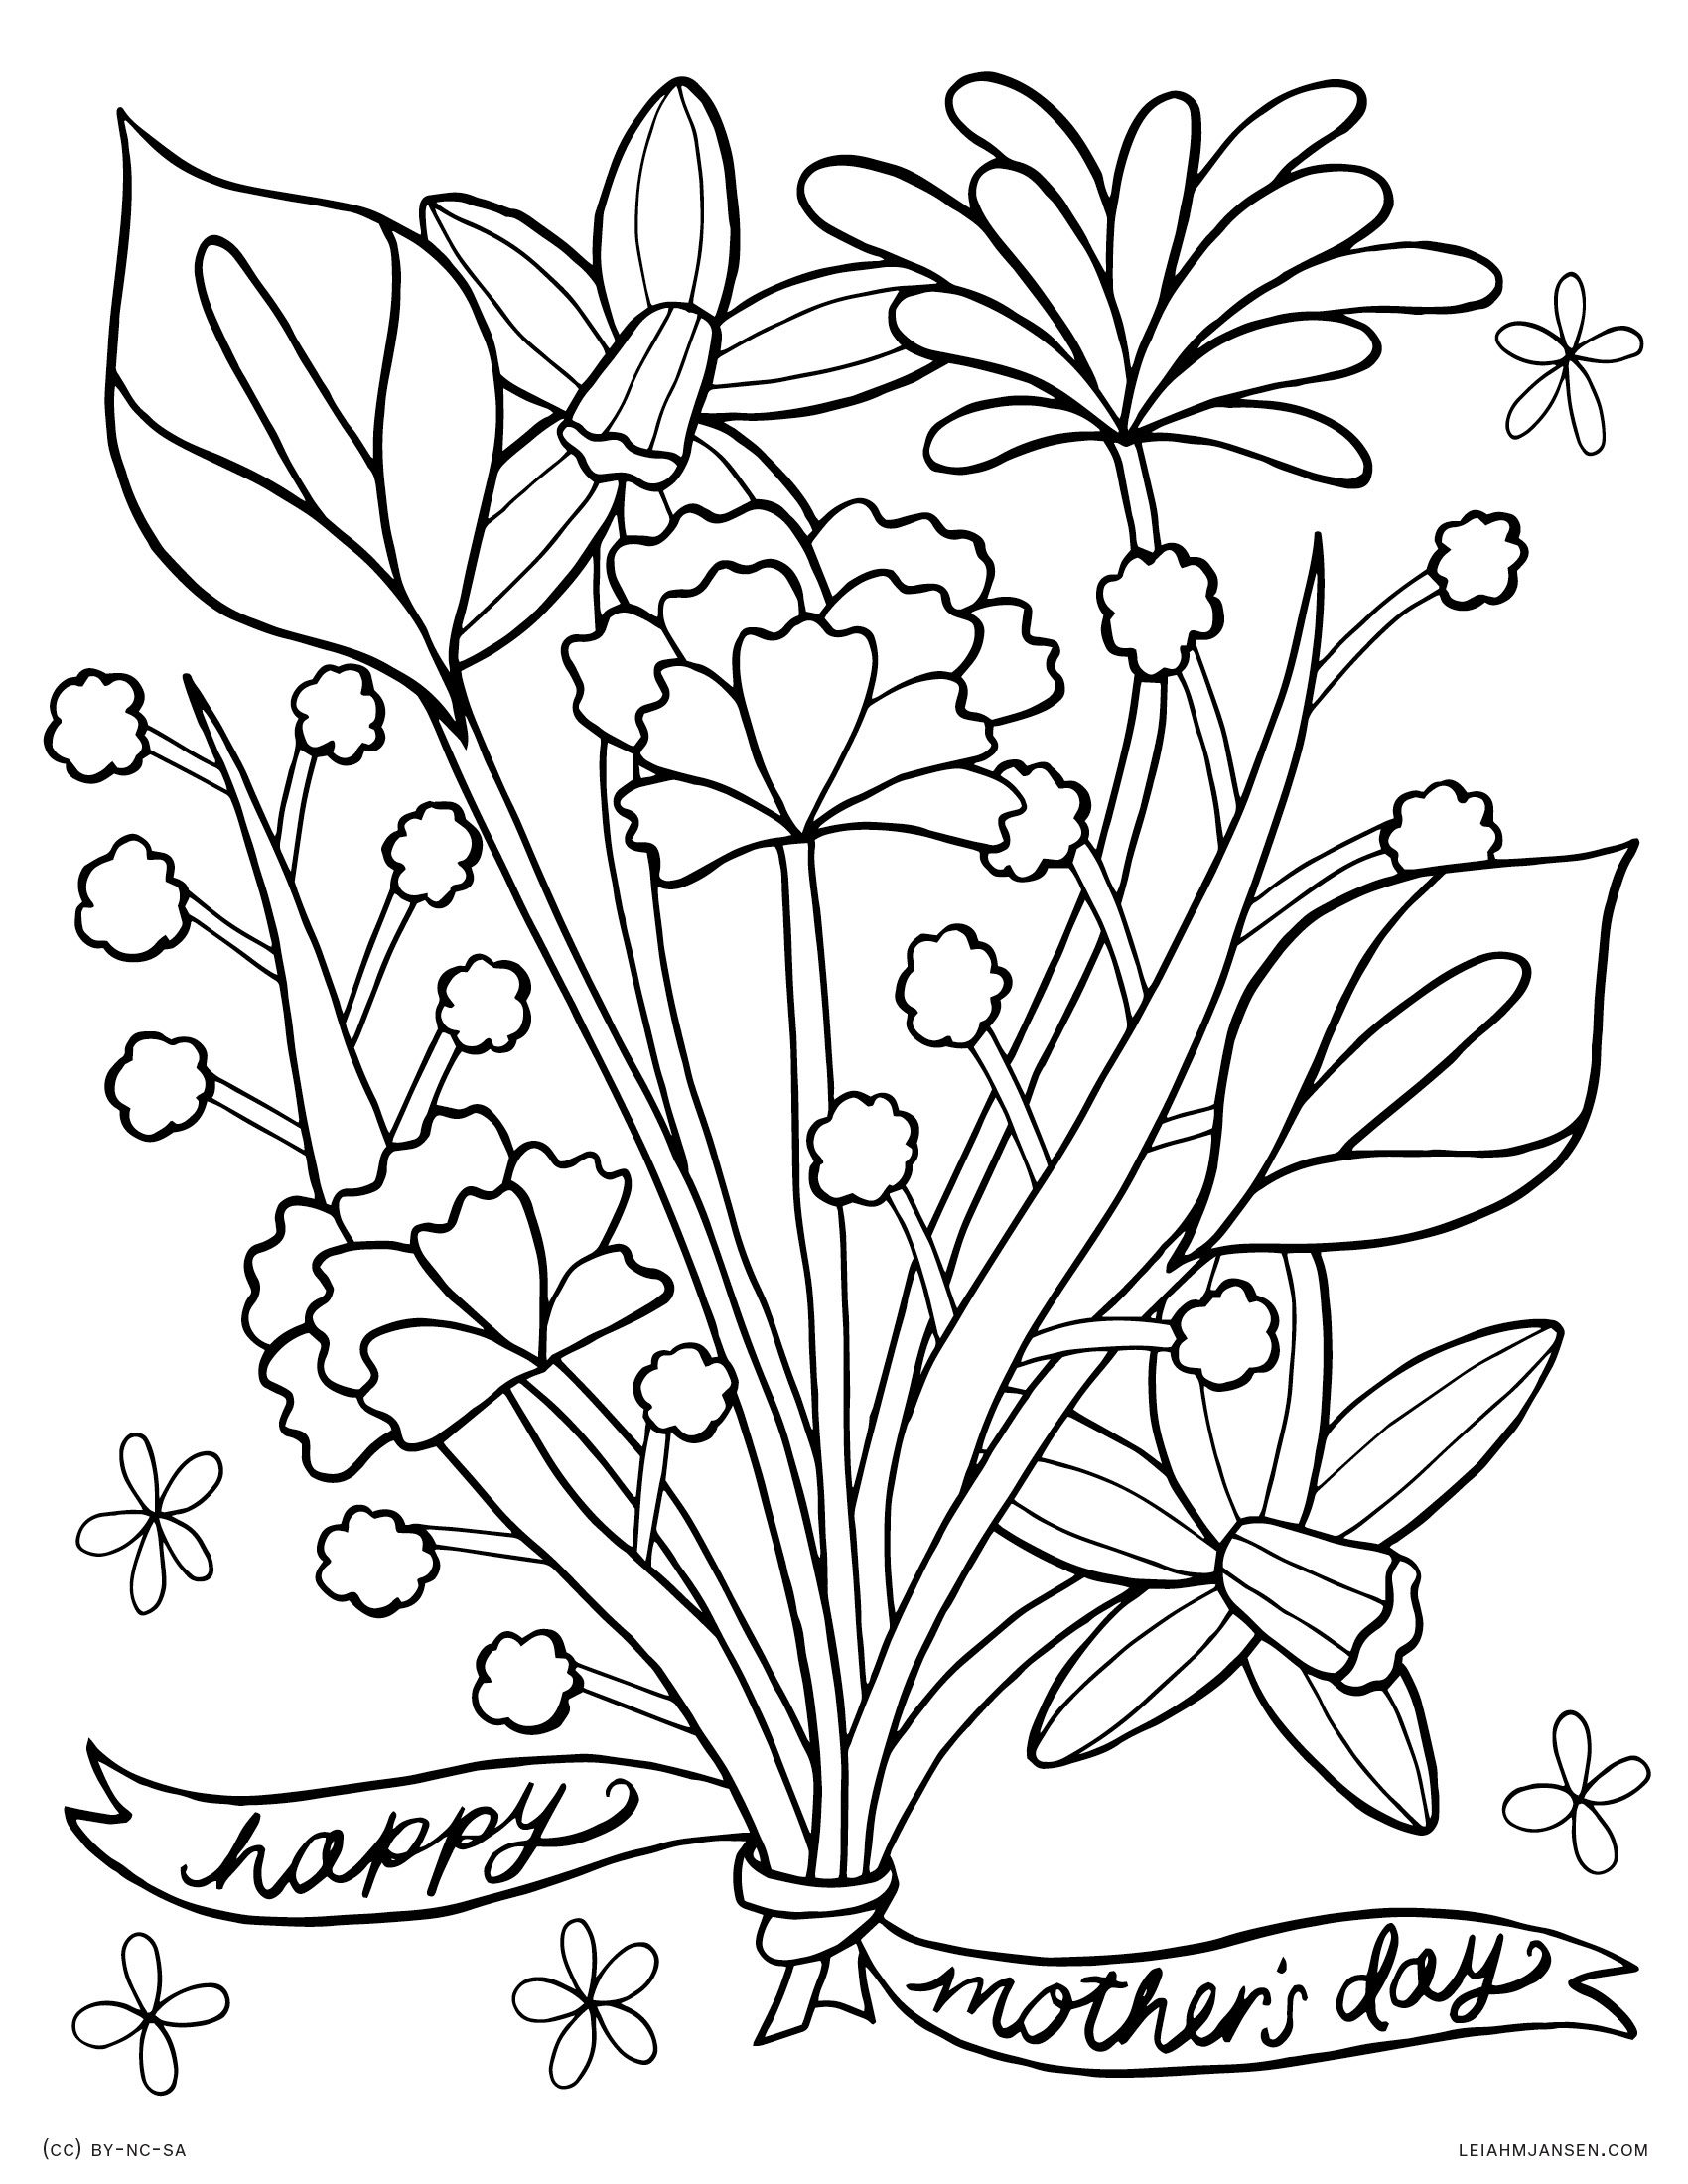 Free coloring pages happy mothers day - Mother S Day Flower Bouquet Happy Mother S Day Free Printable Coloring Page For Adults And